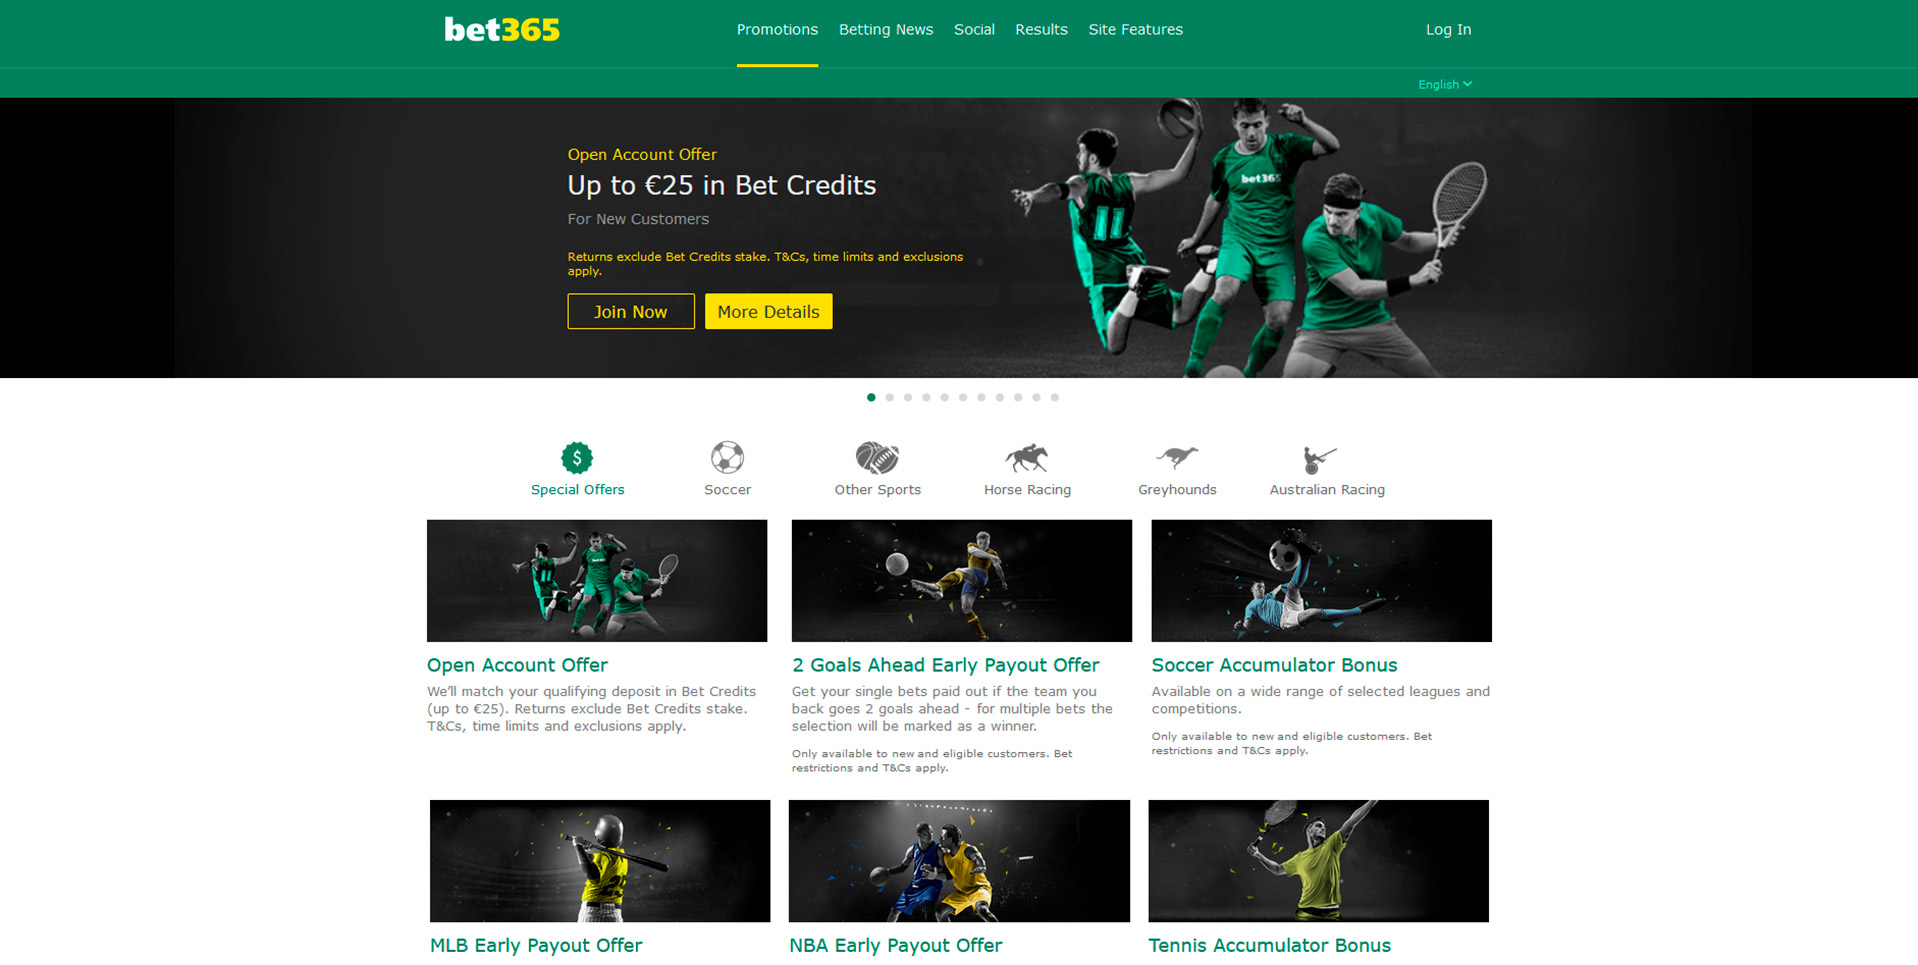 Bet365 bonuses and promotions.